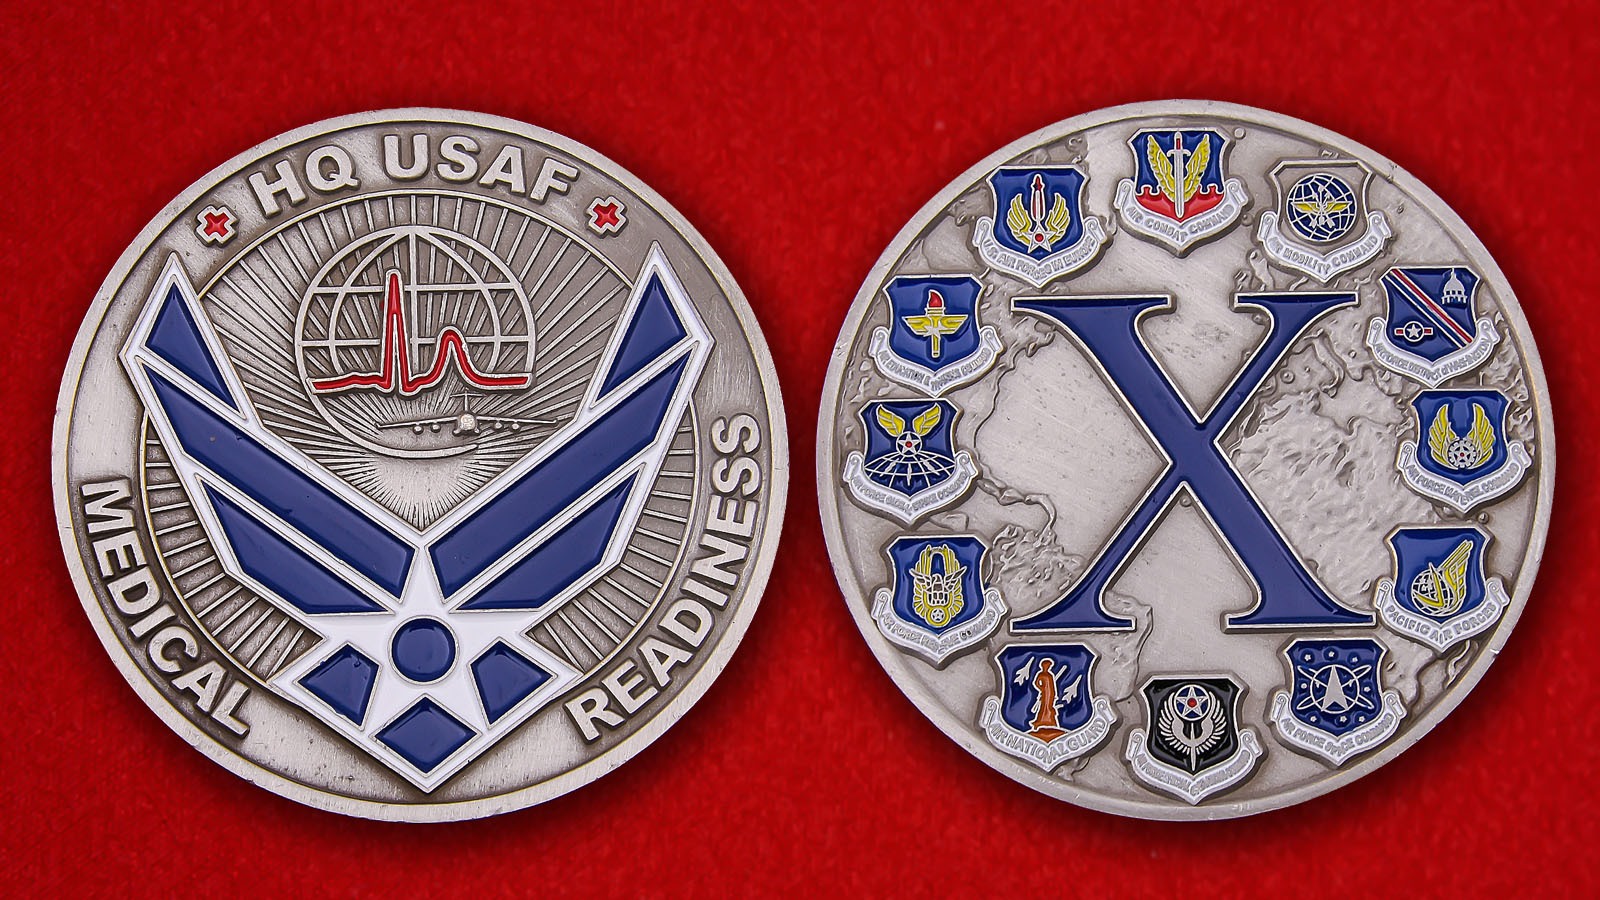 US Air Force HQ Medical Readiness Challenge Coin